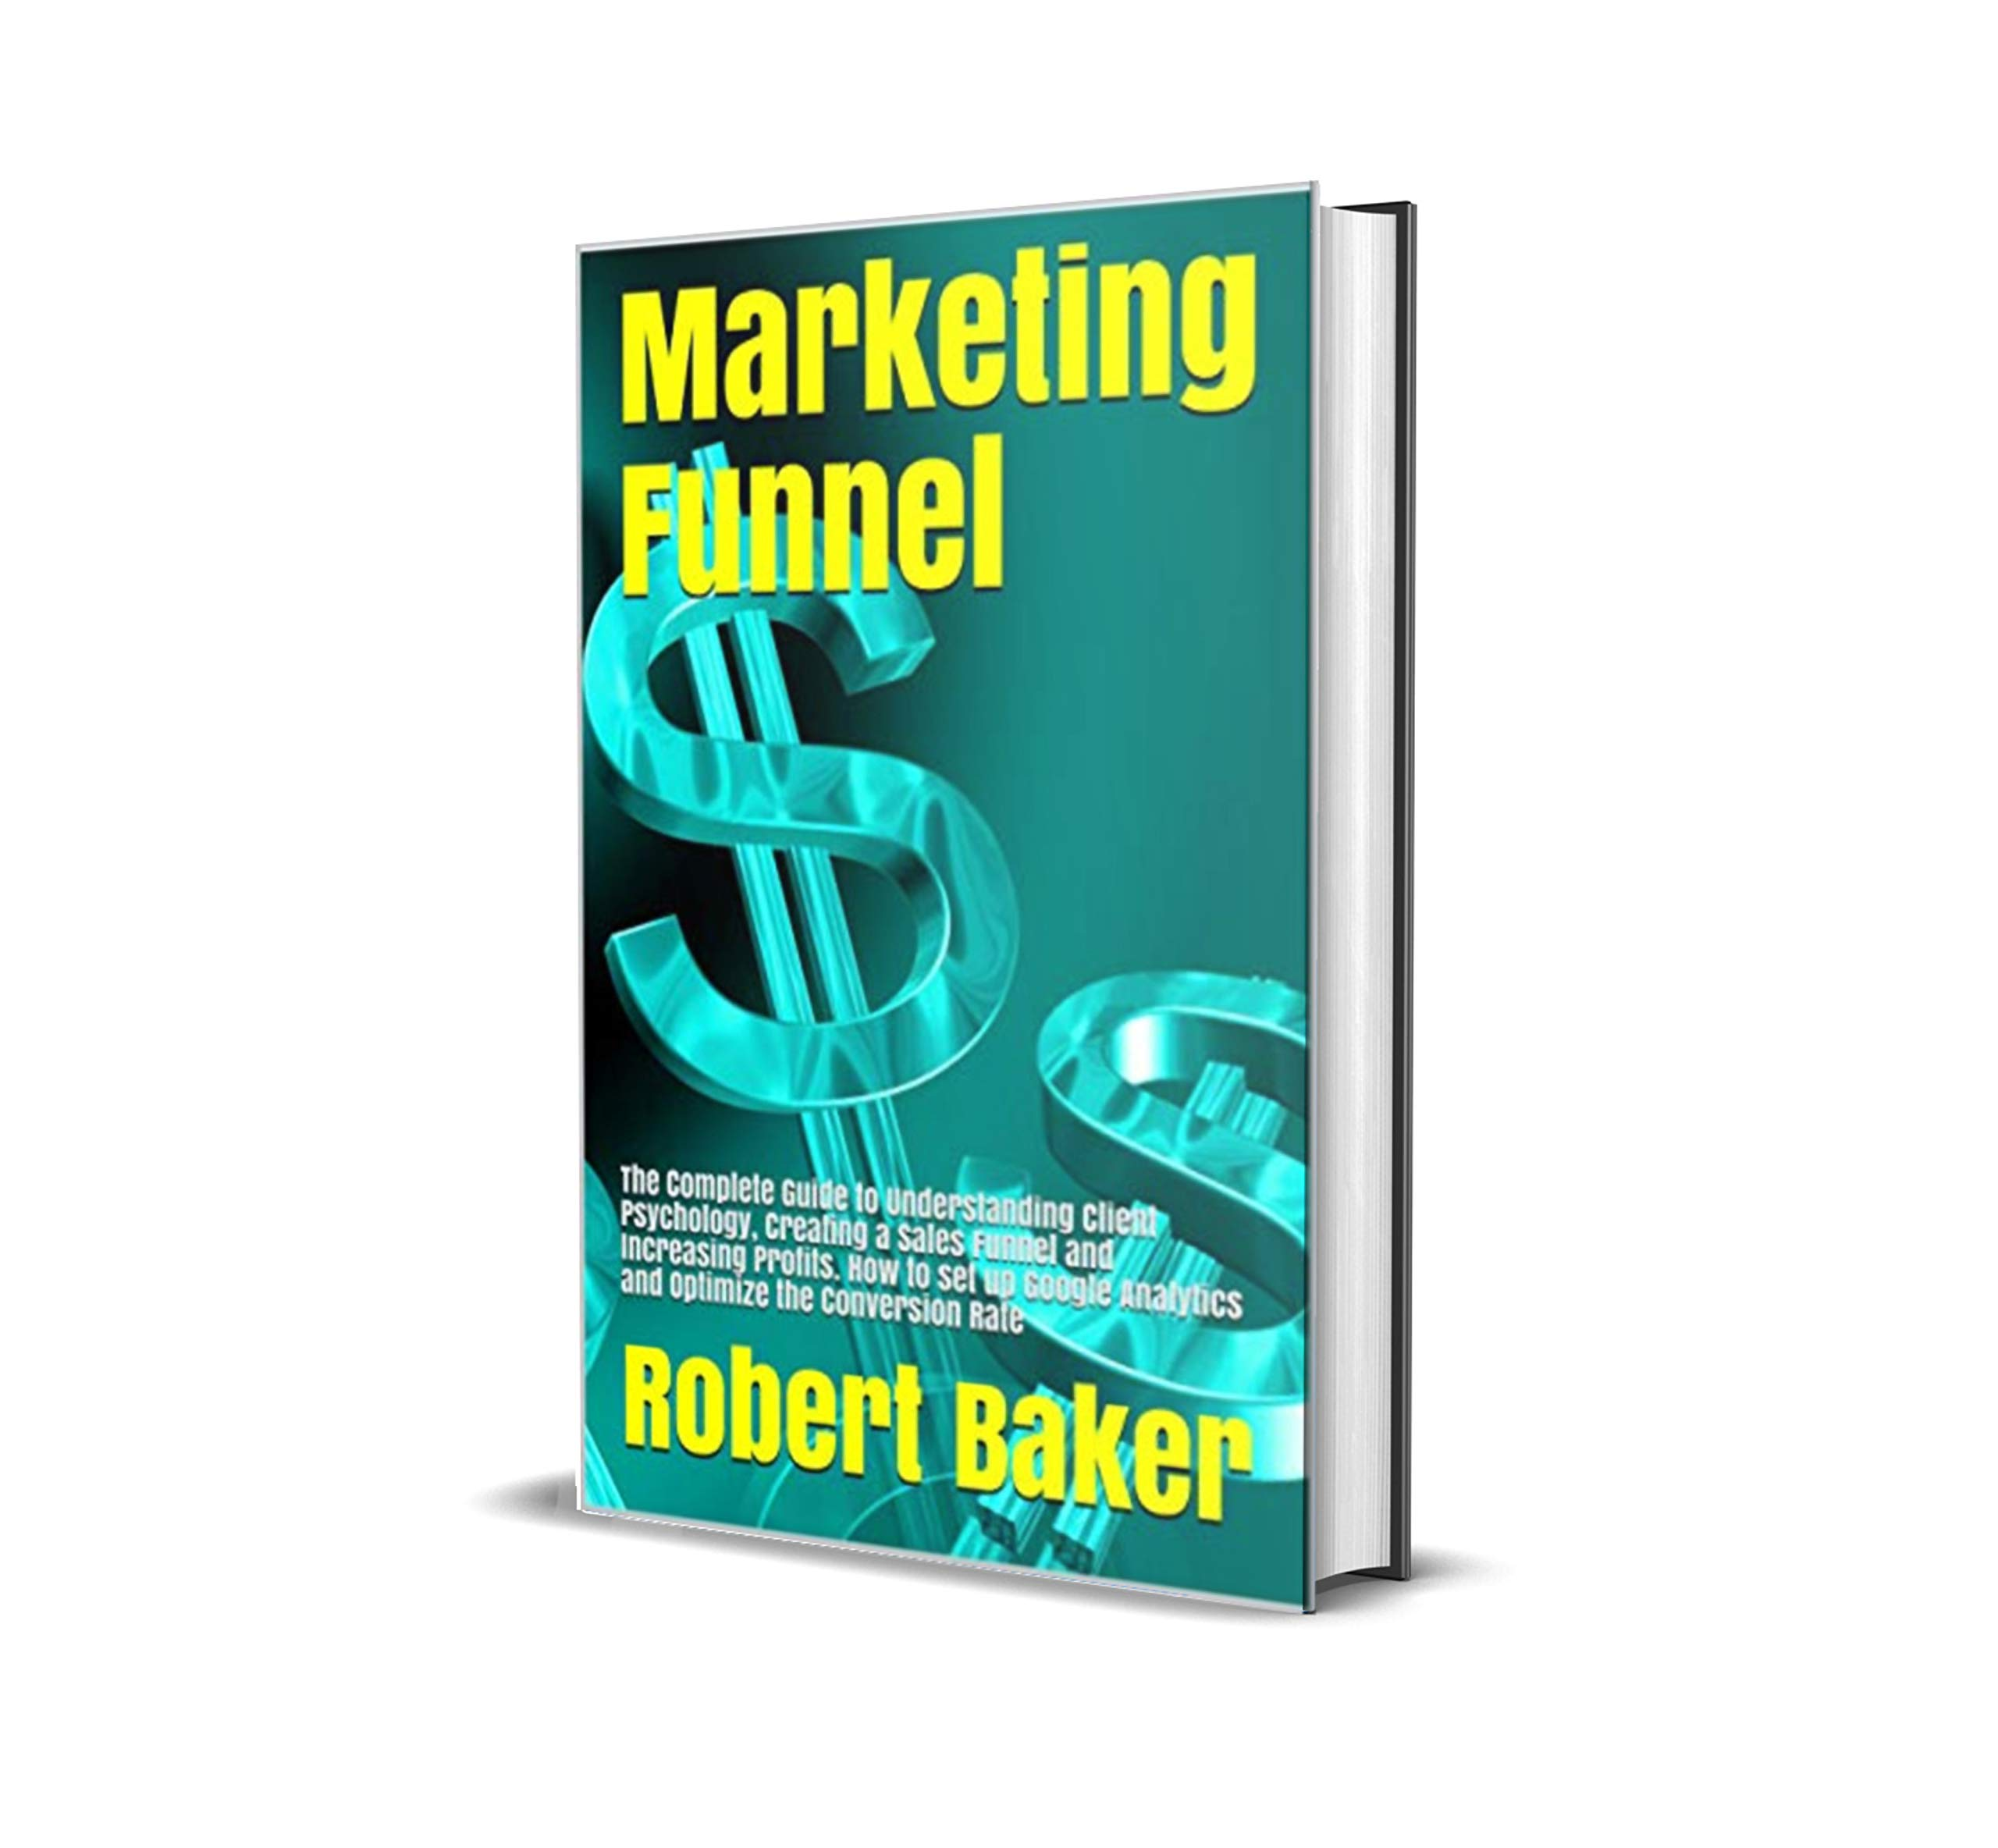 Marketing Funnel: The Complete Guide to Understanding Client Psychology, Creating a Sales Funnel and Increasing Profits. How to set up Google Analytics and Optimize the Conversion Rate